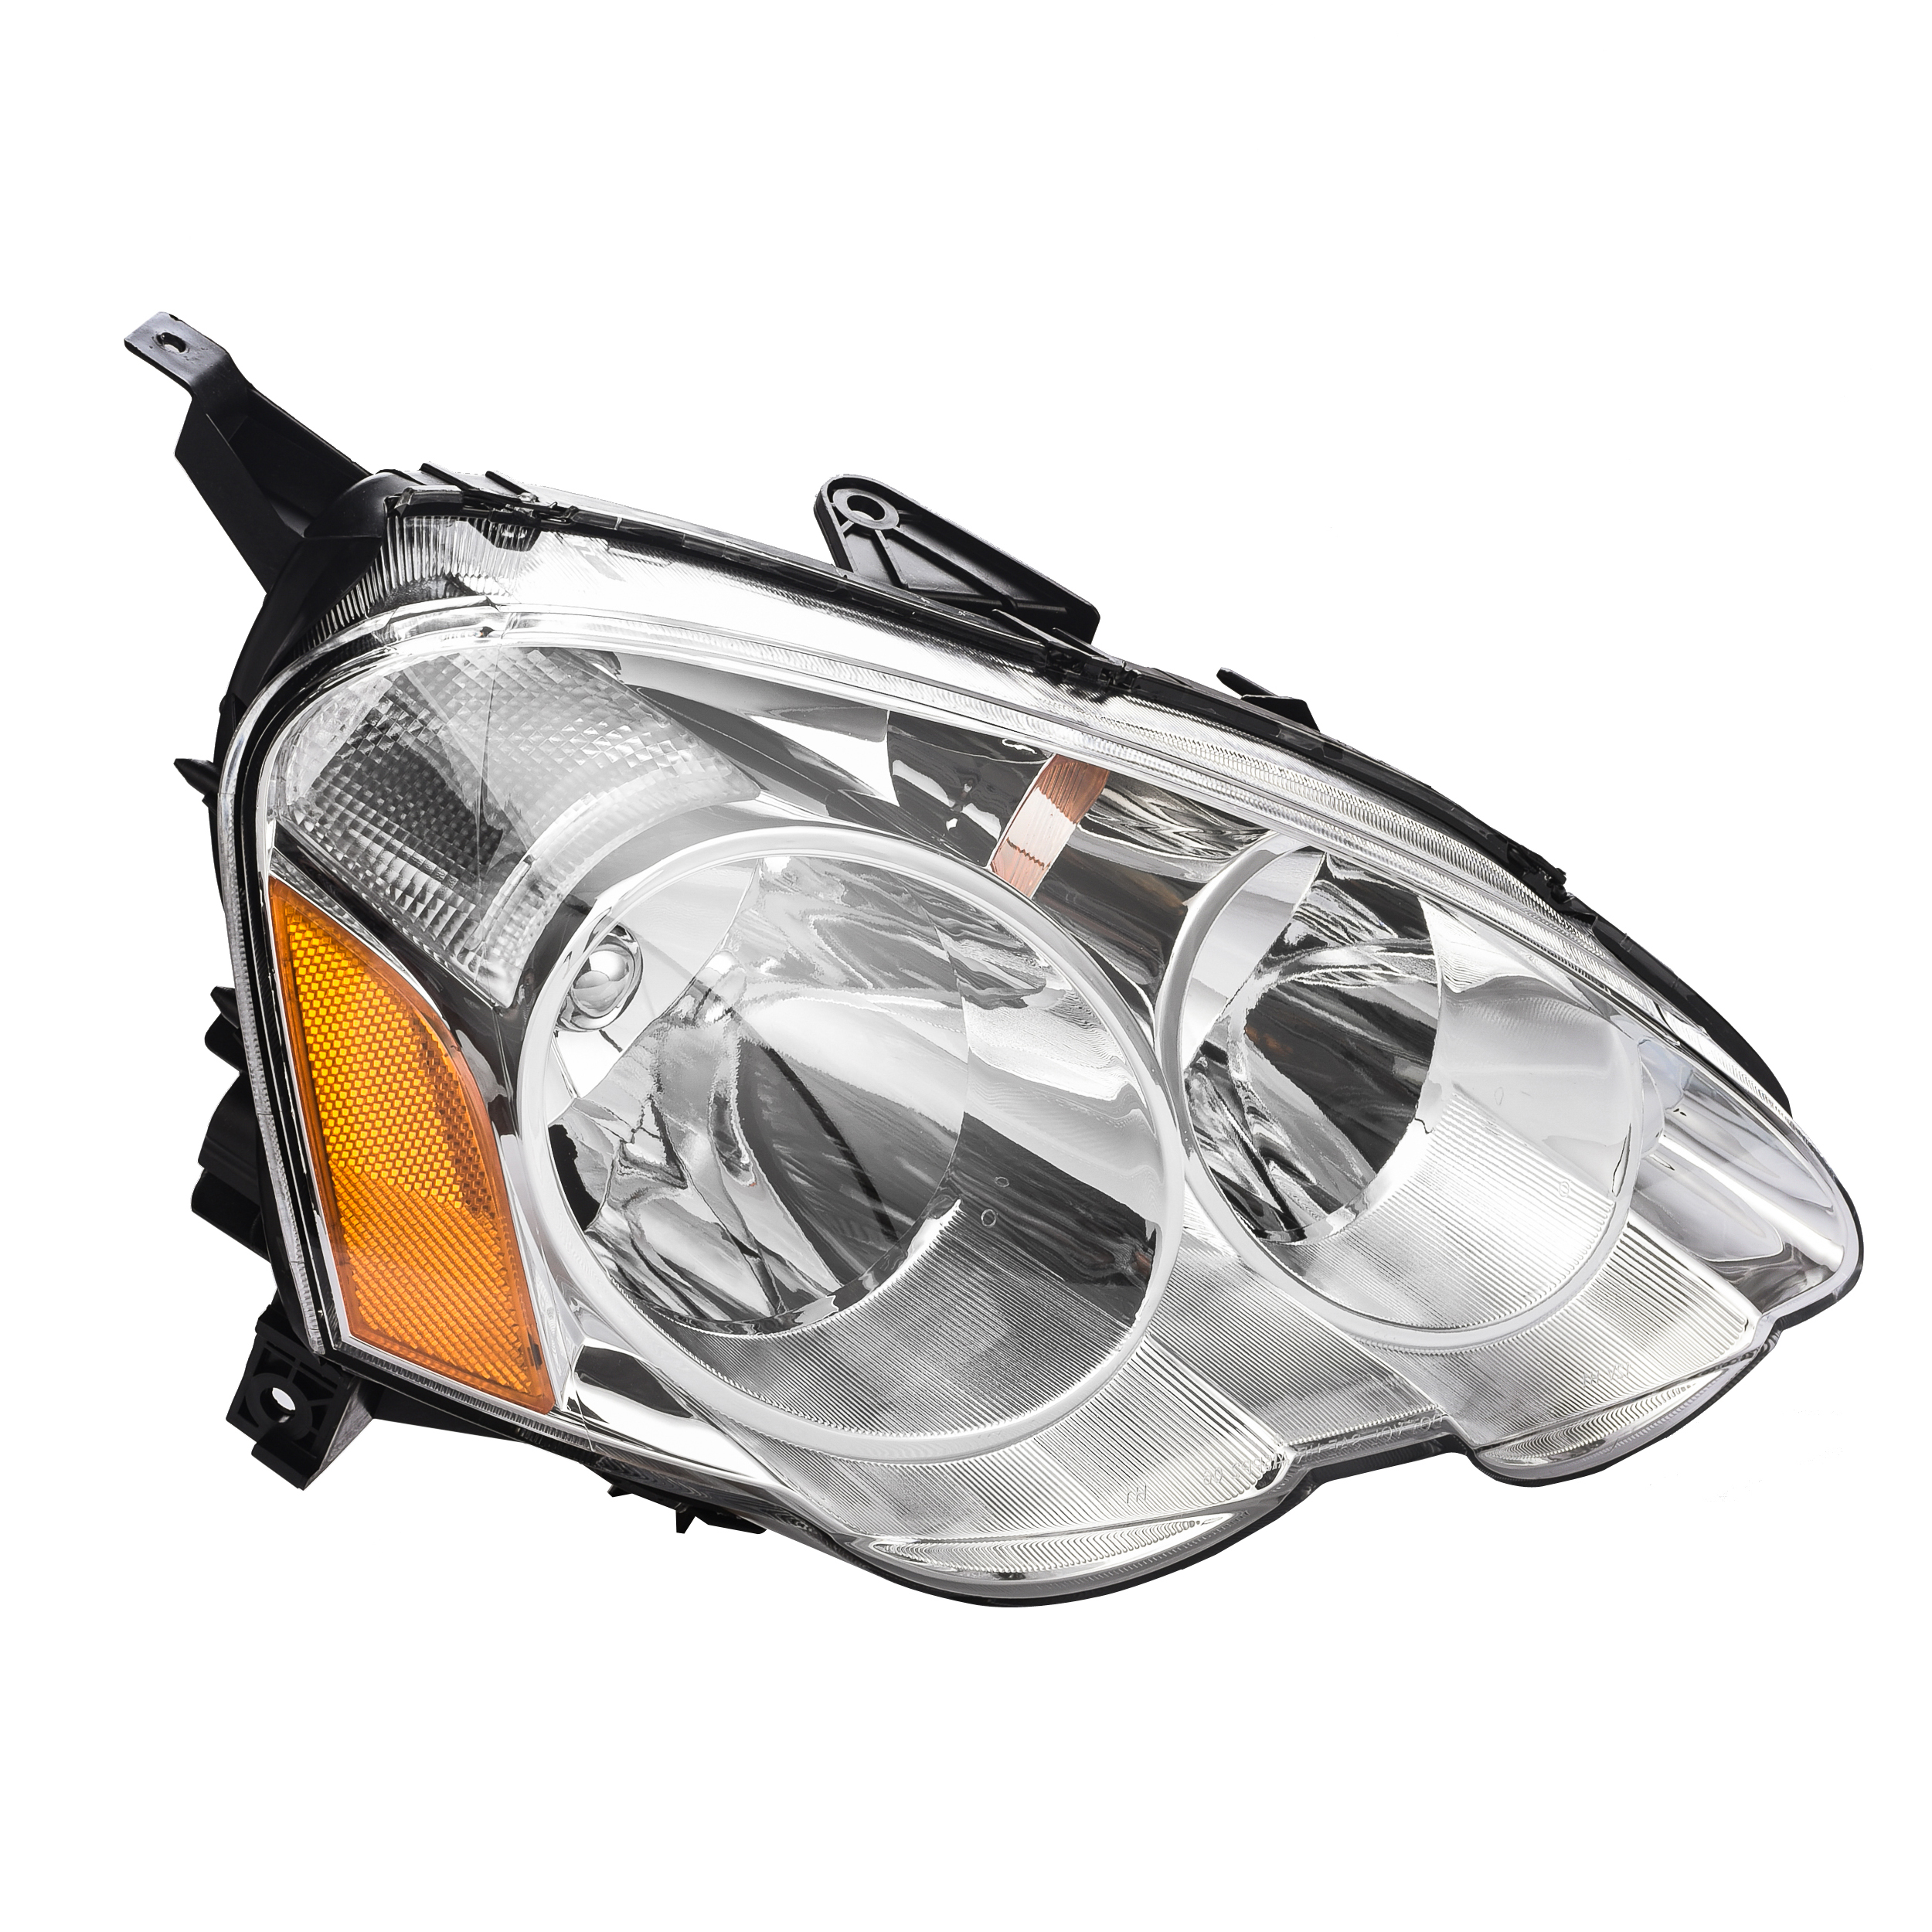 Passenger Side Headlamp Lens/Housing